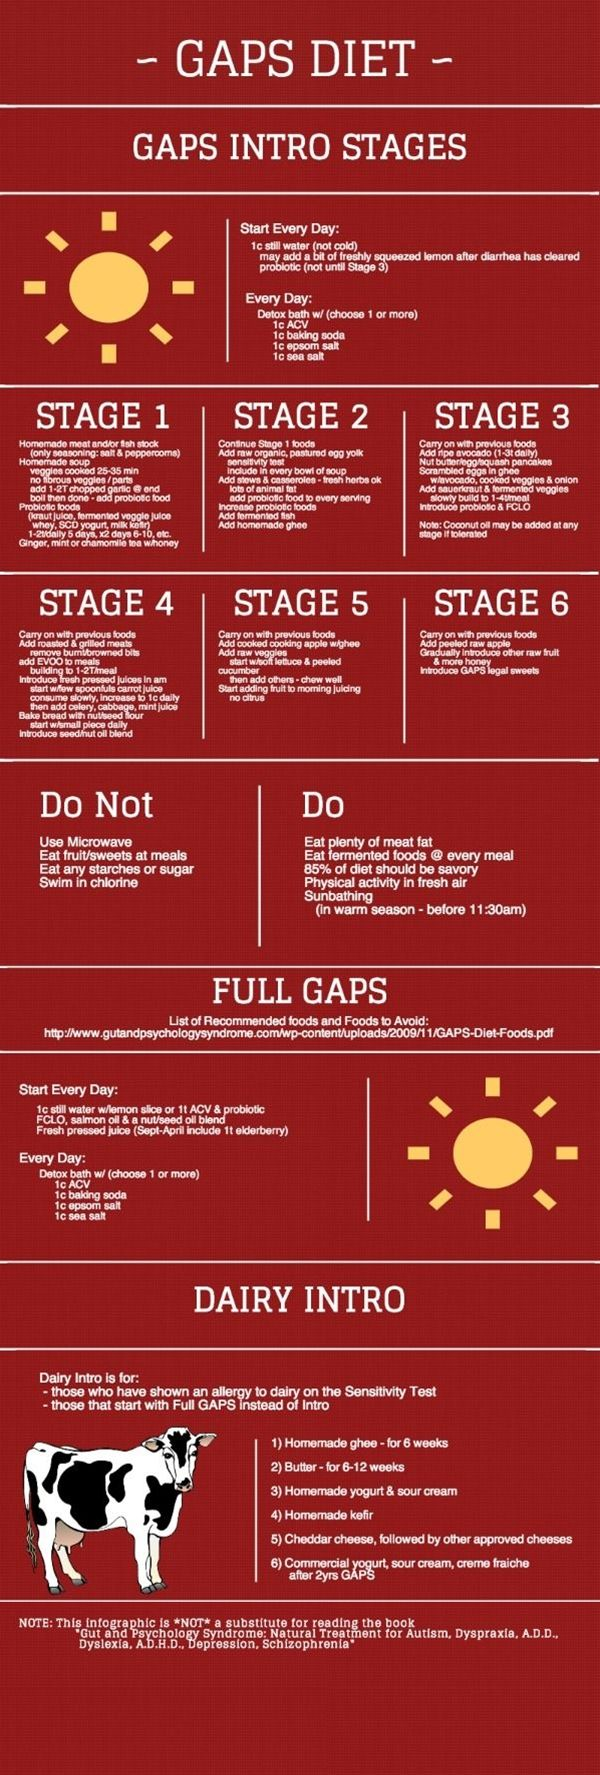 gaps diet infographic | health & fitness | pinterest | gaps diet